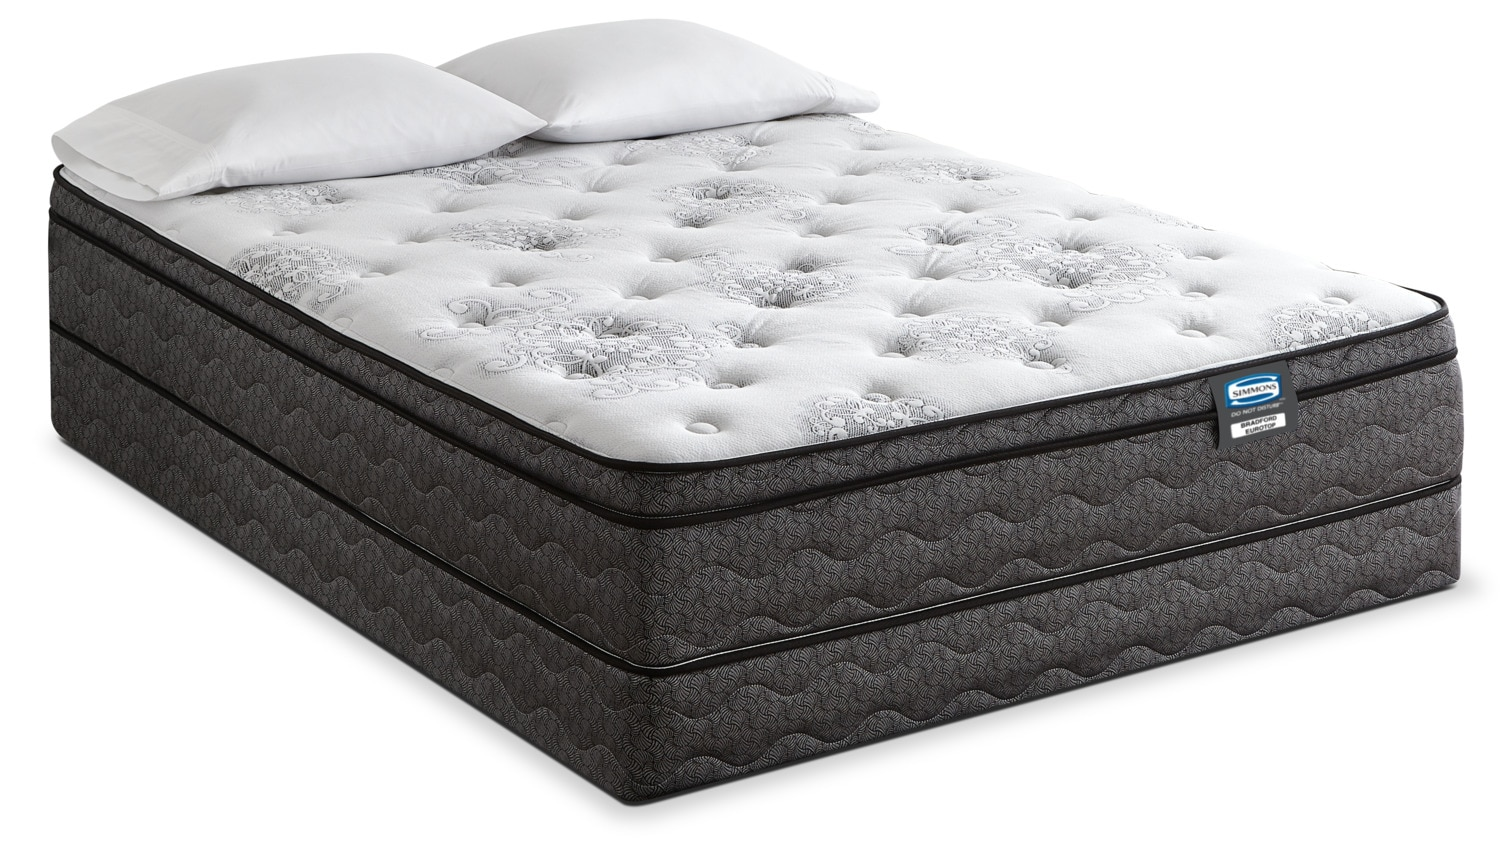 Simmons Do Not Disturb Bradford Euro-Top Firm Queen Mattress Set